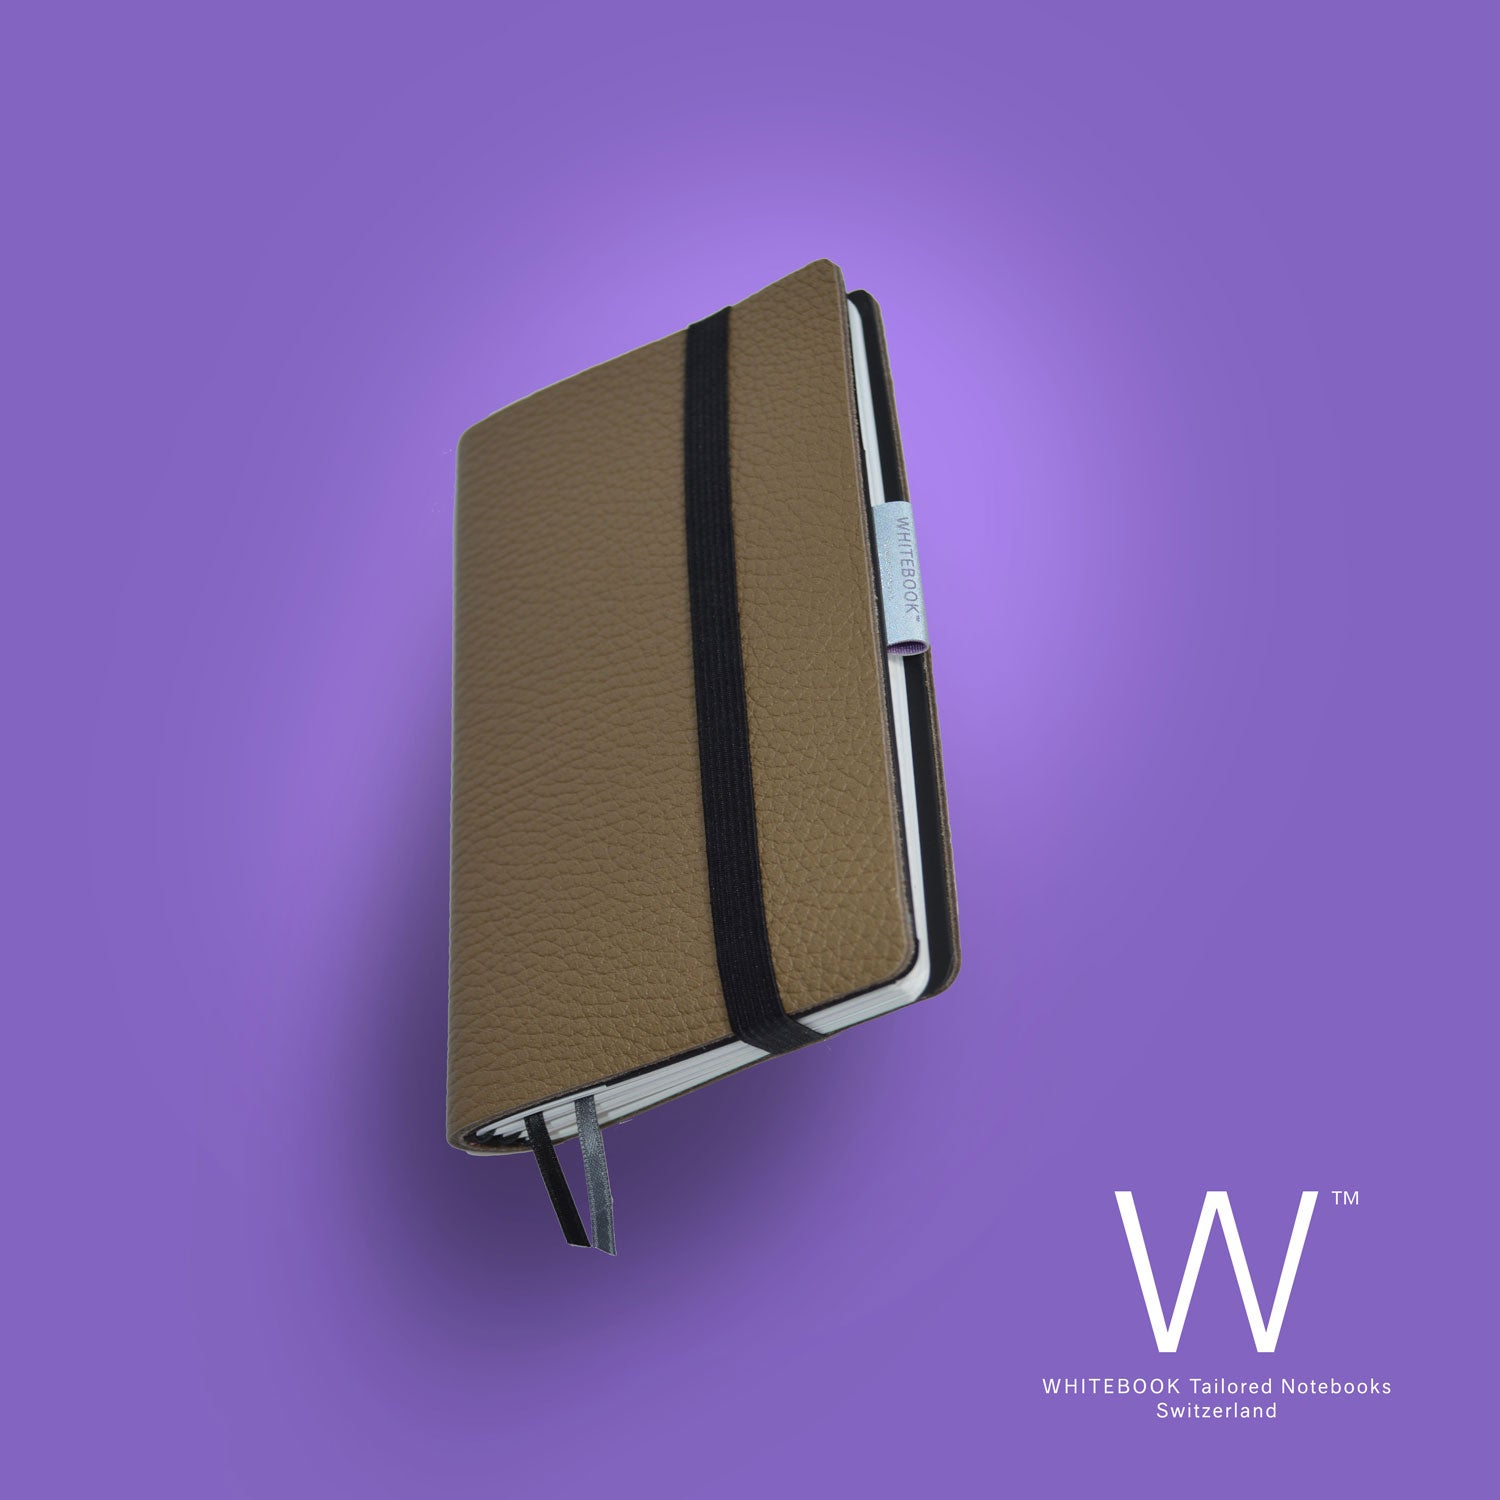 Image of Whitebook Mobile, S559, thick french calf leather, LV marron